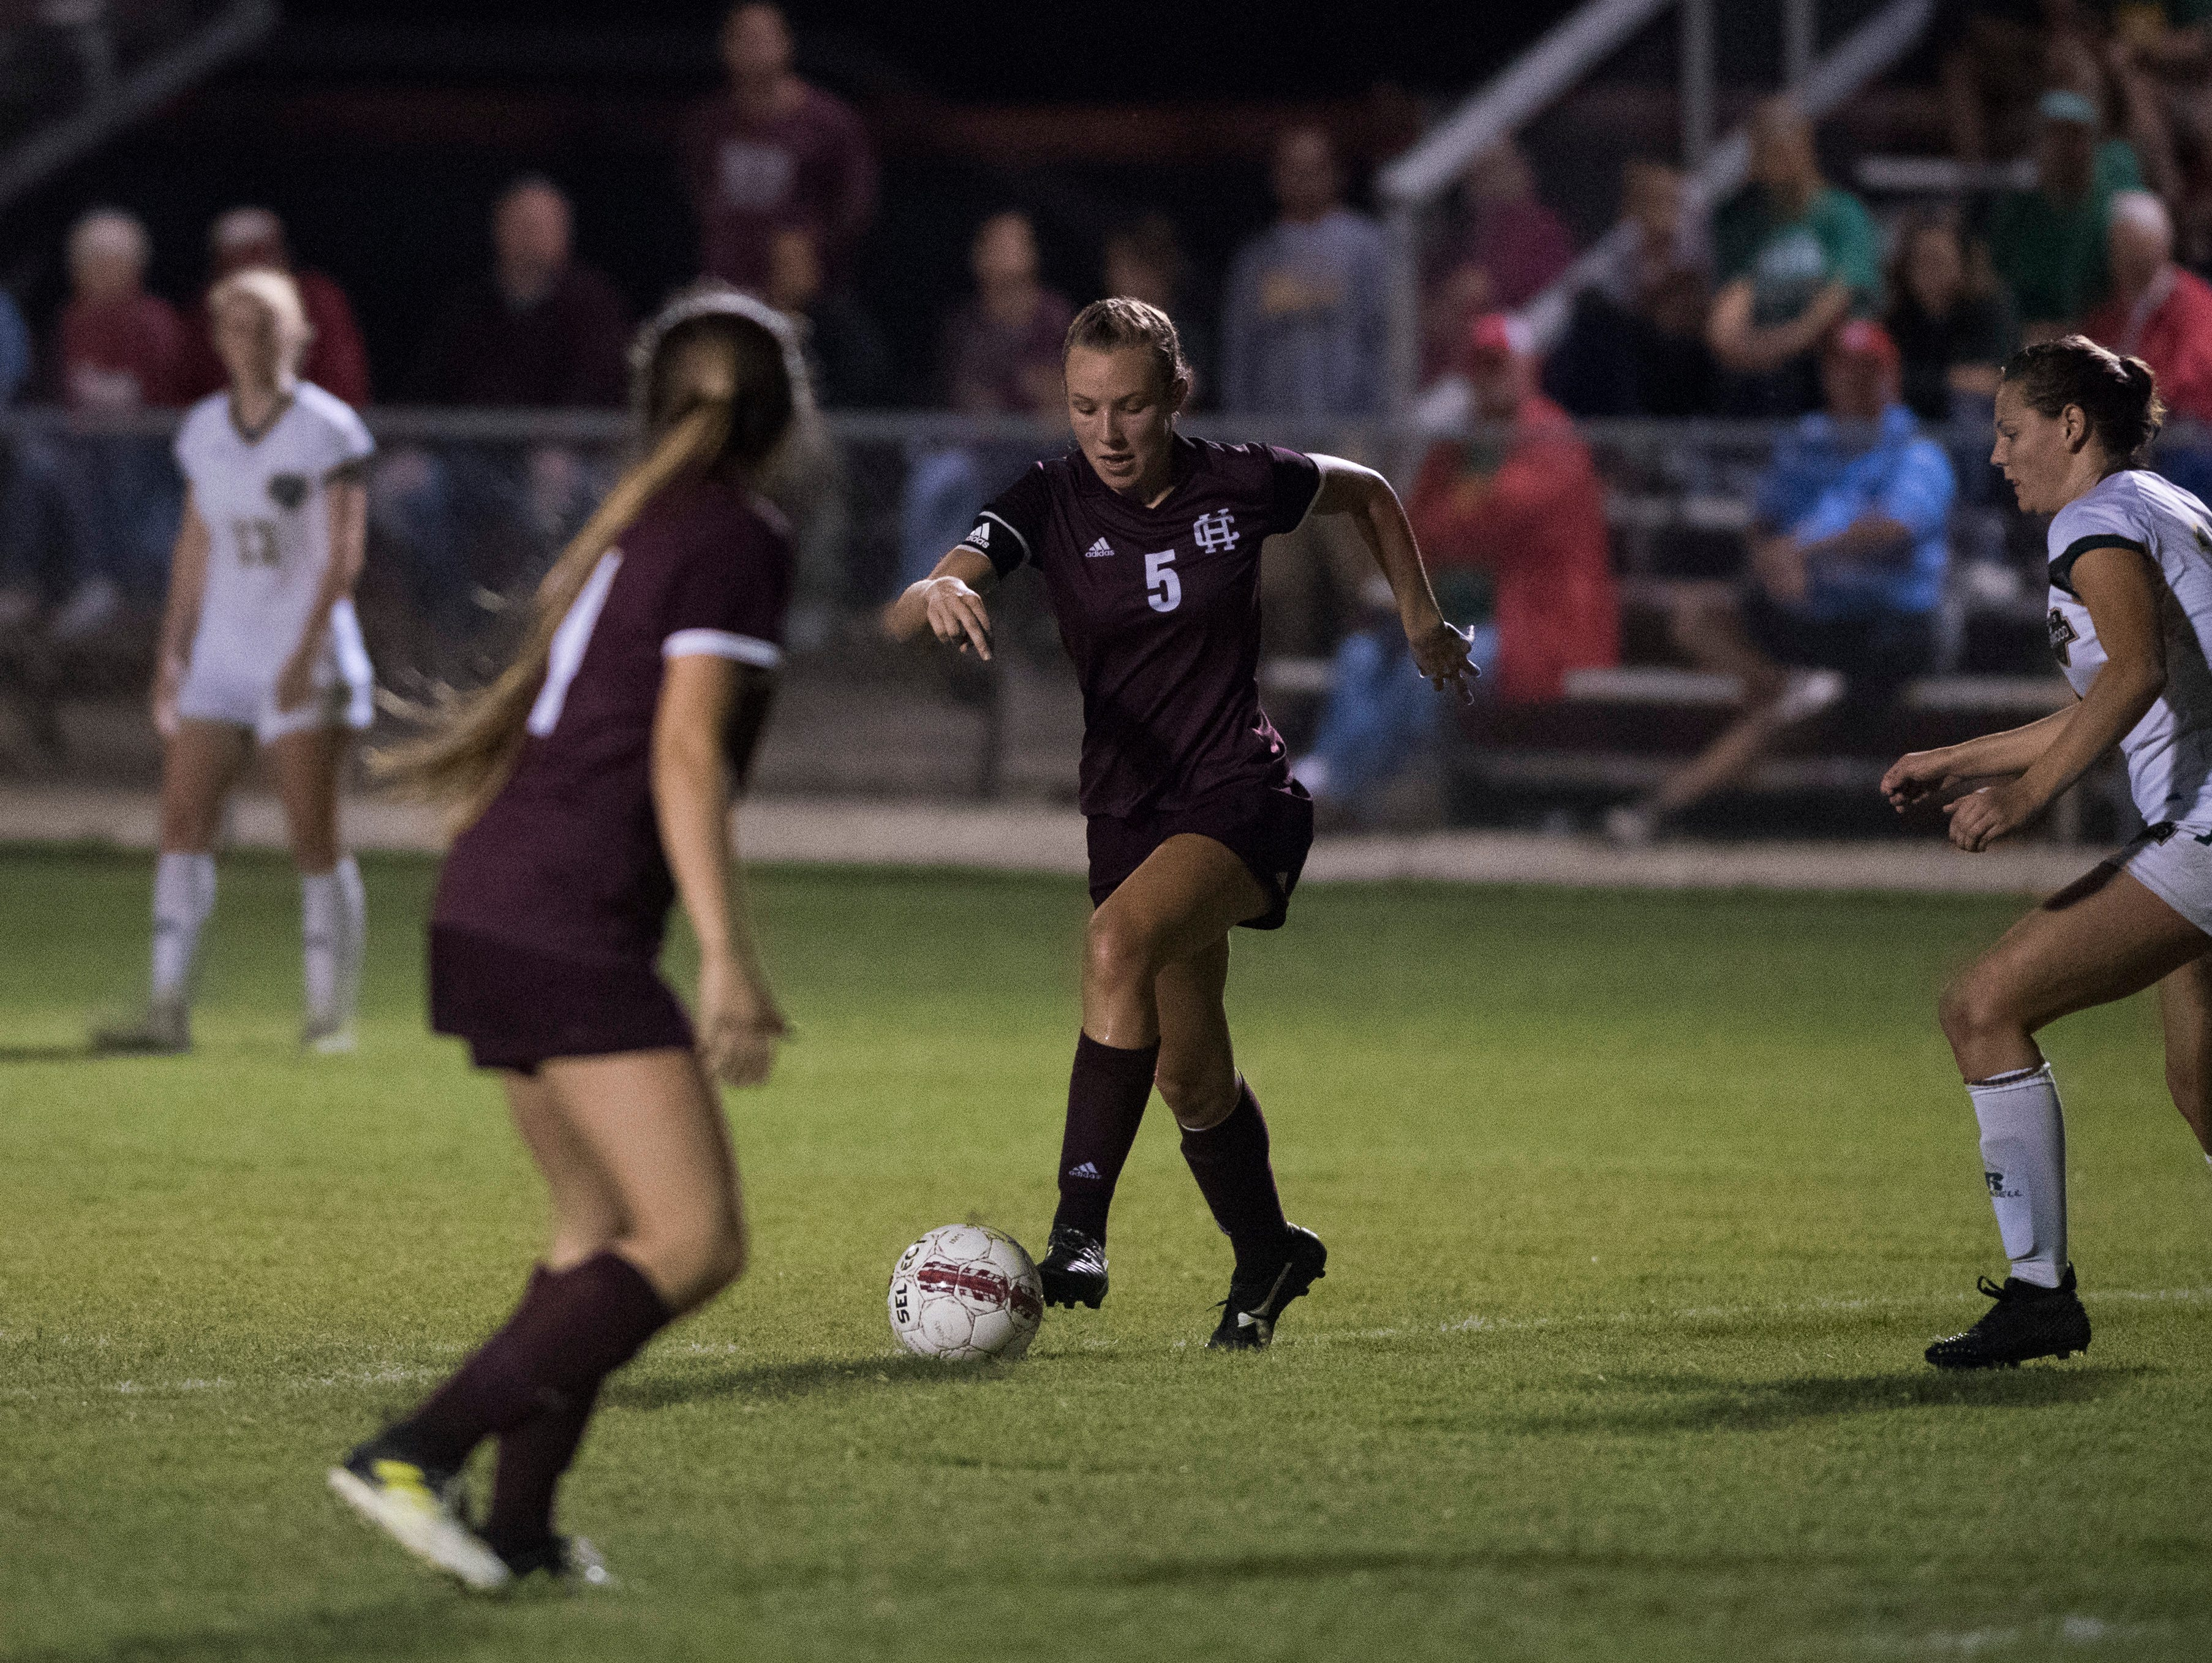 Maddie Griggs (5) ties the state record for career goals while competing in the Henderson County vs Greenwood match Monday, Oct. 1, 2018.